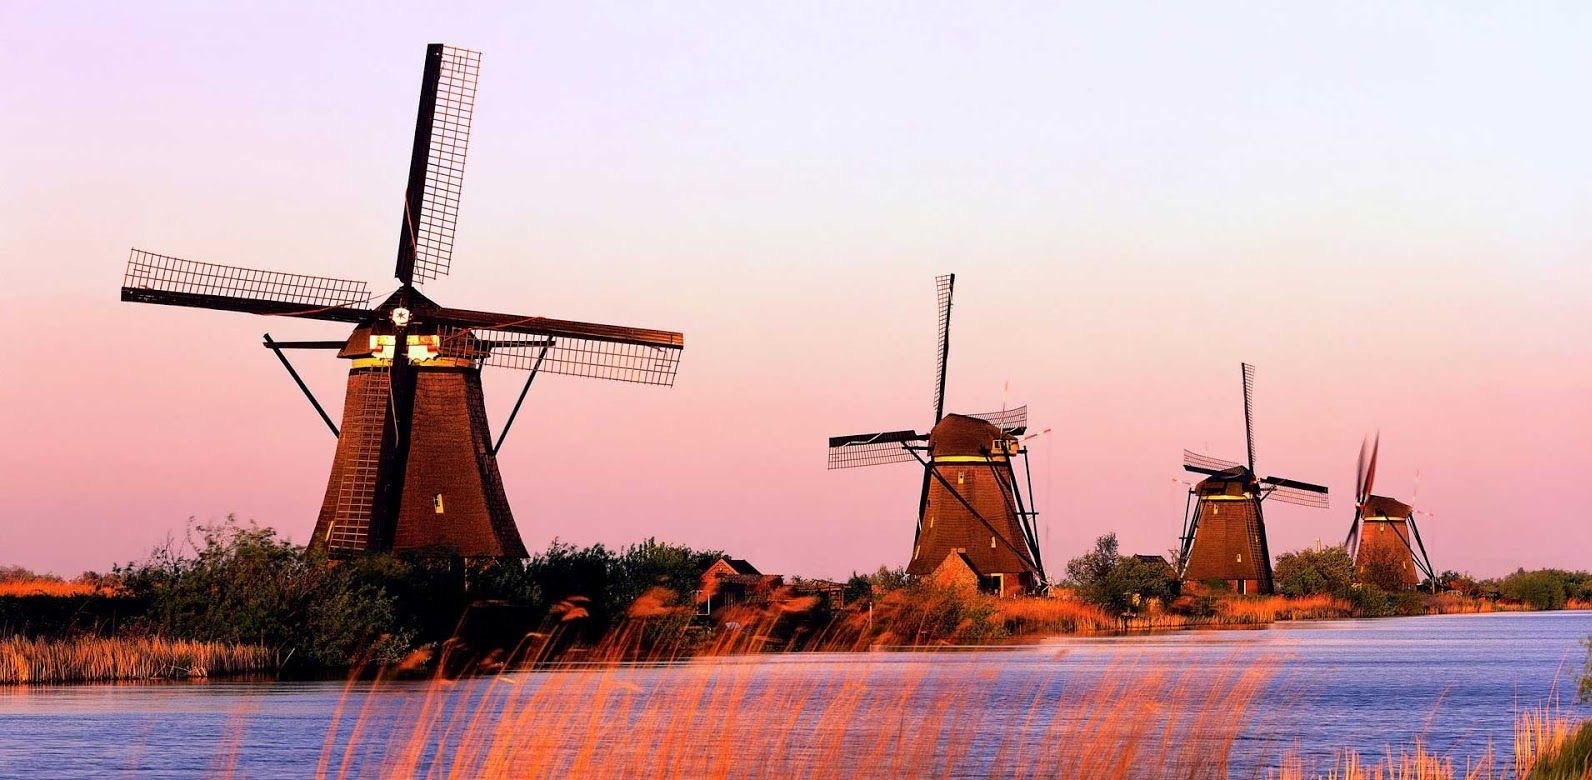 The Netherlands: The UNESCO World Heritage Foundation potential official Eurovision 2020 partner?